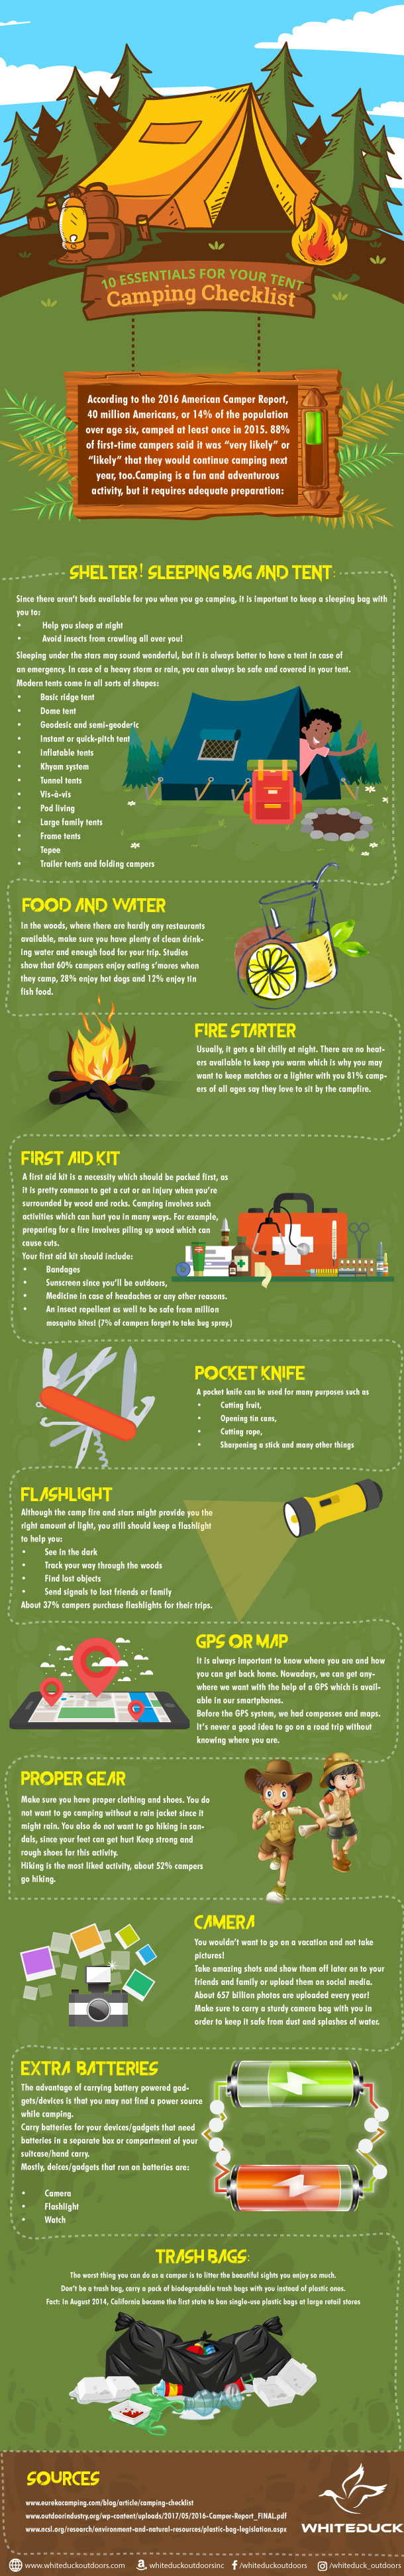 Camping Checklist: 10 Essentials You Can't Do Without - Infographic